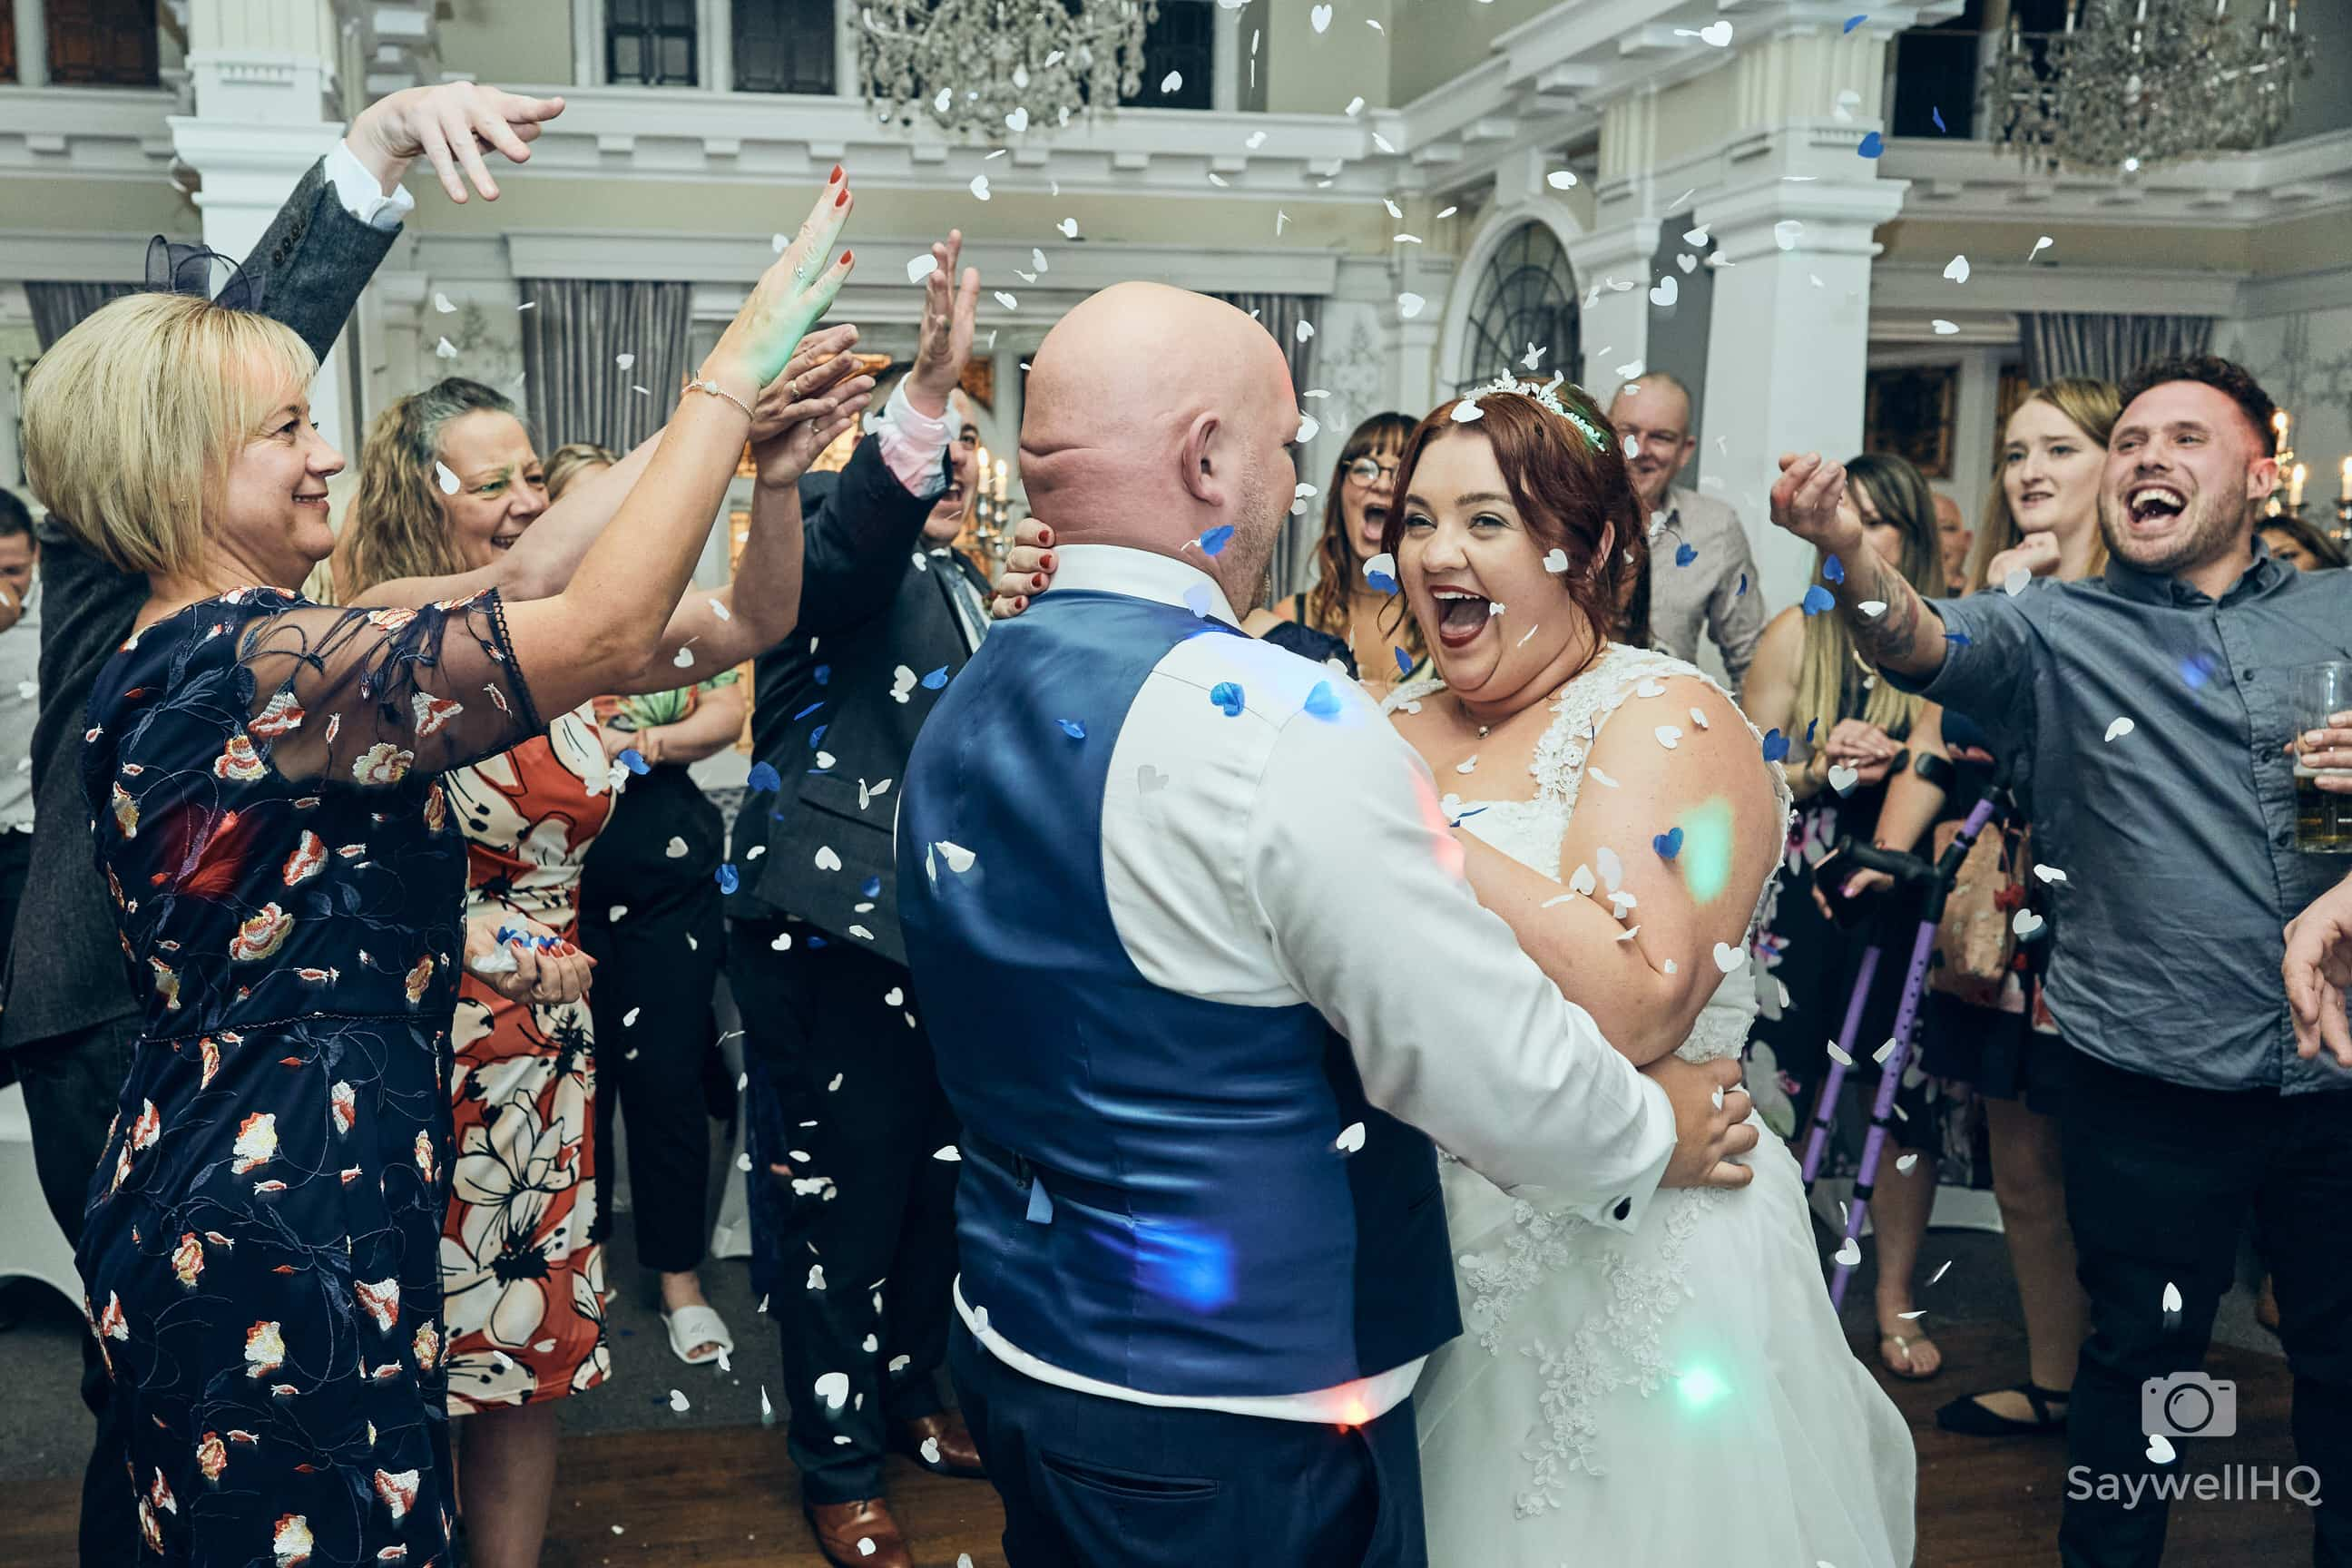 The Embankment Pub Wedding Photography - bride and groom showered in confetti during the first dance at the embankment pub in Nottingham